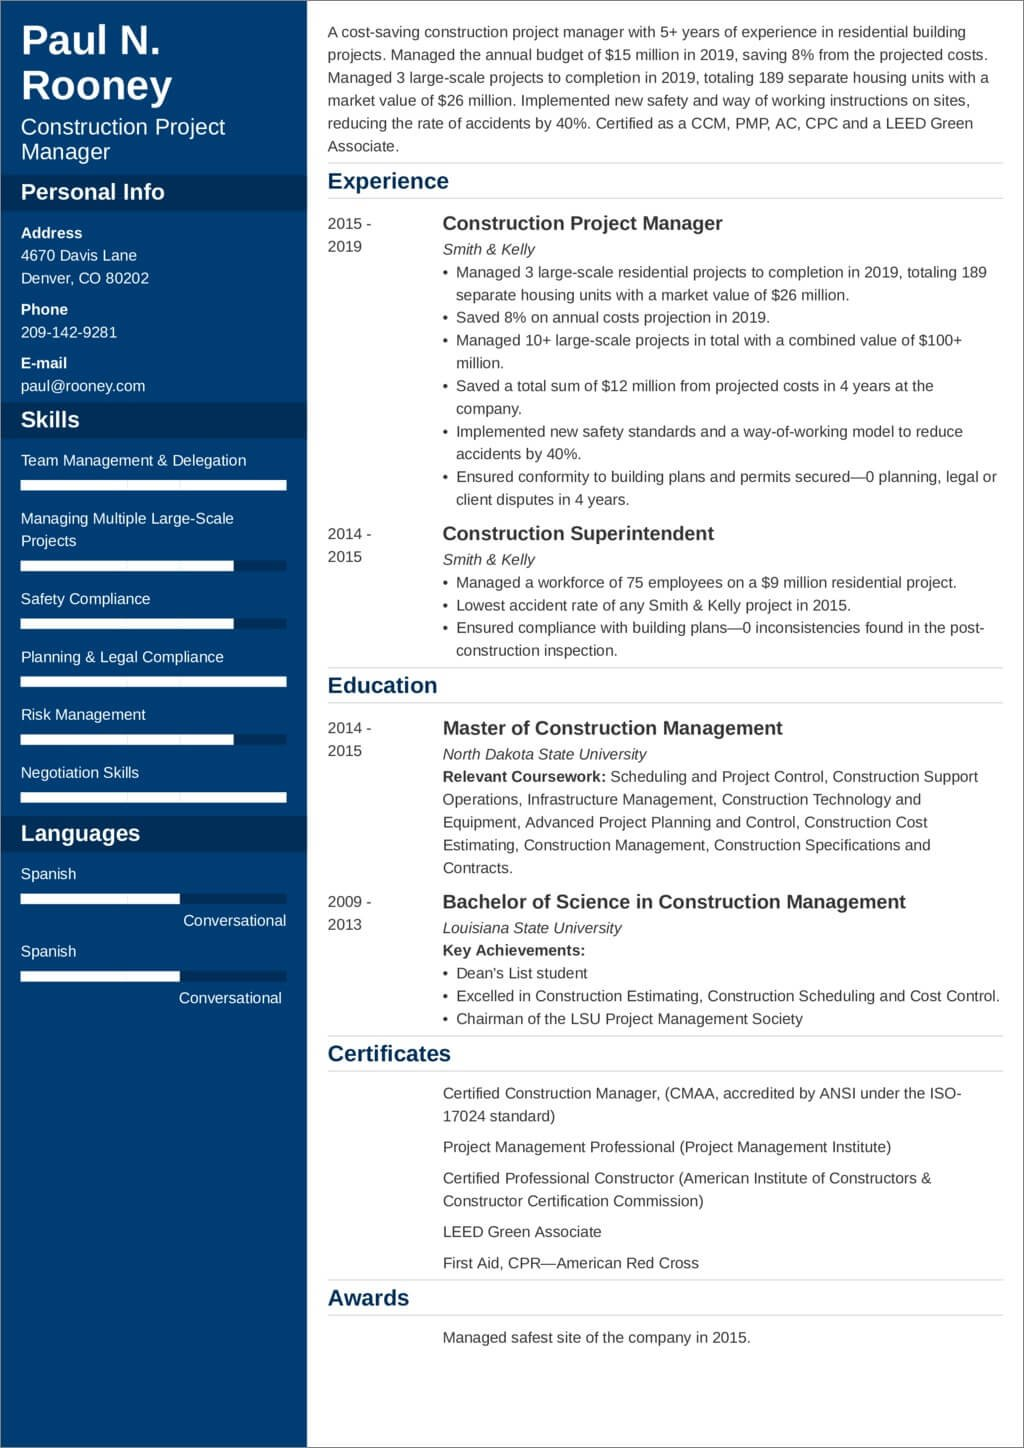 construction project manager resume sample and tips rl assisted synonym bartender job Resume Assisted Synonym Resume